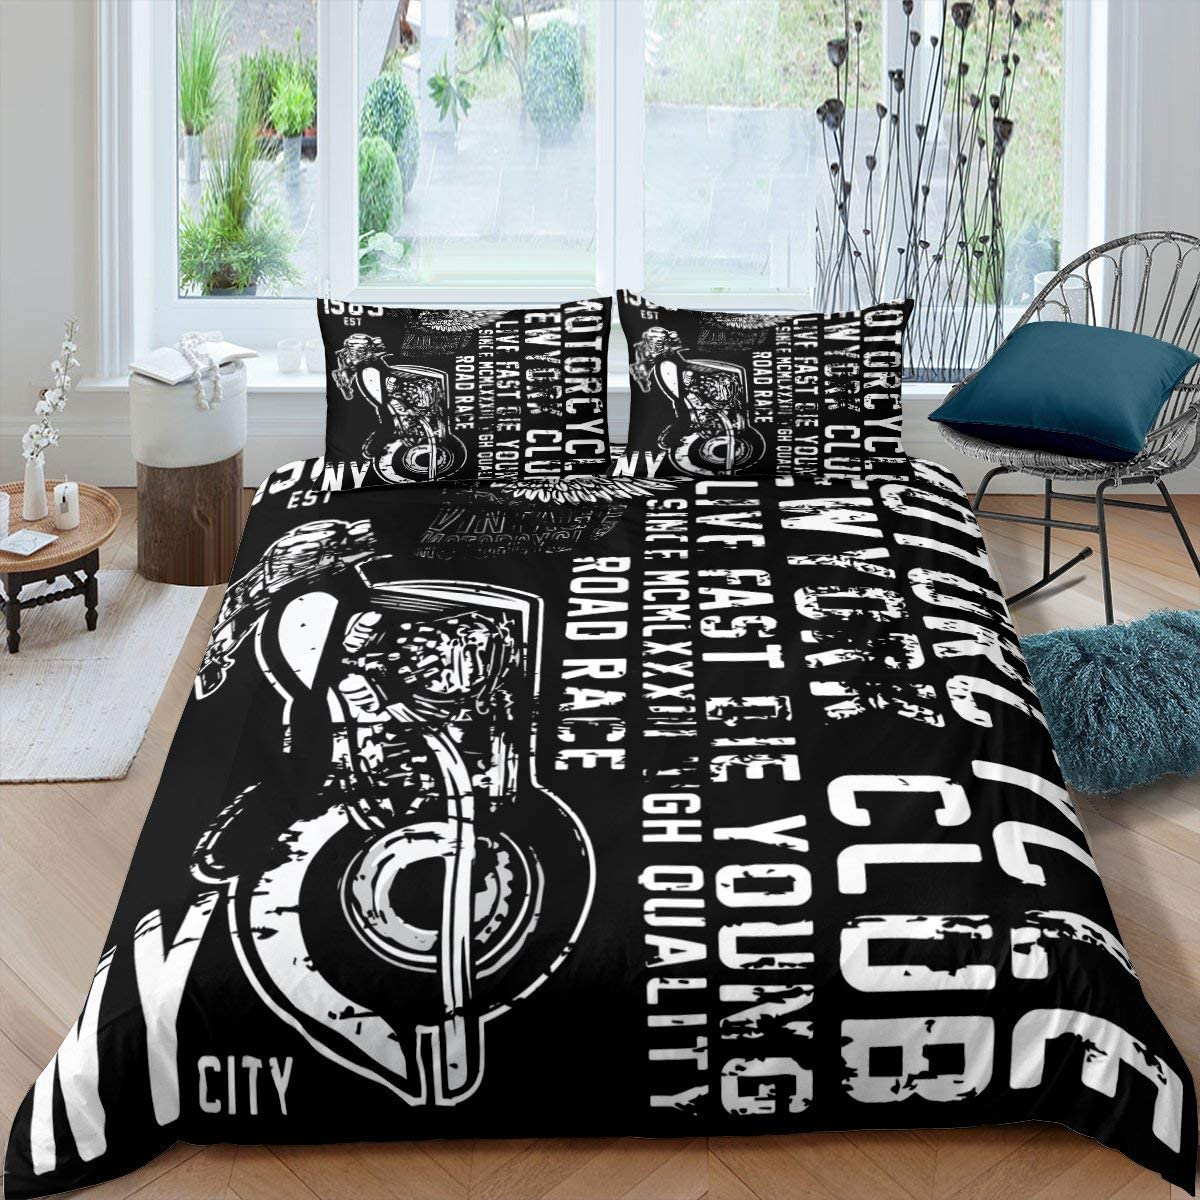 Motocross Bedding Set, 3D Cross-Country Motorcycle Dirt Bike Extreme Sports Design Adventurous Style Comforter Cover, Decorative 2 Piece Duvet Cover With 1 Pillow Sham, Twin Size, Black White